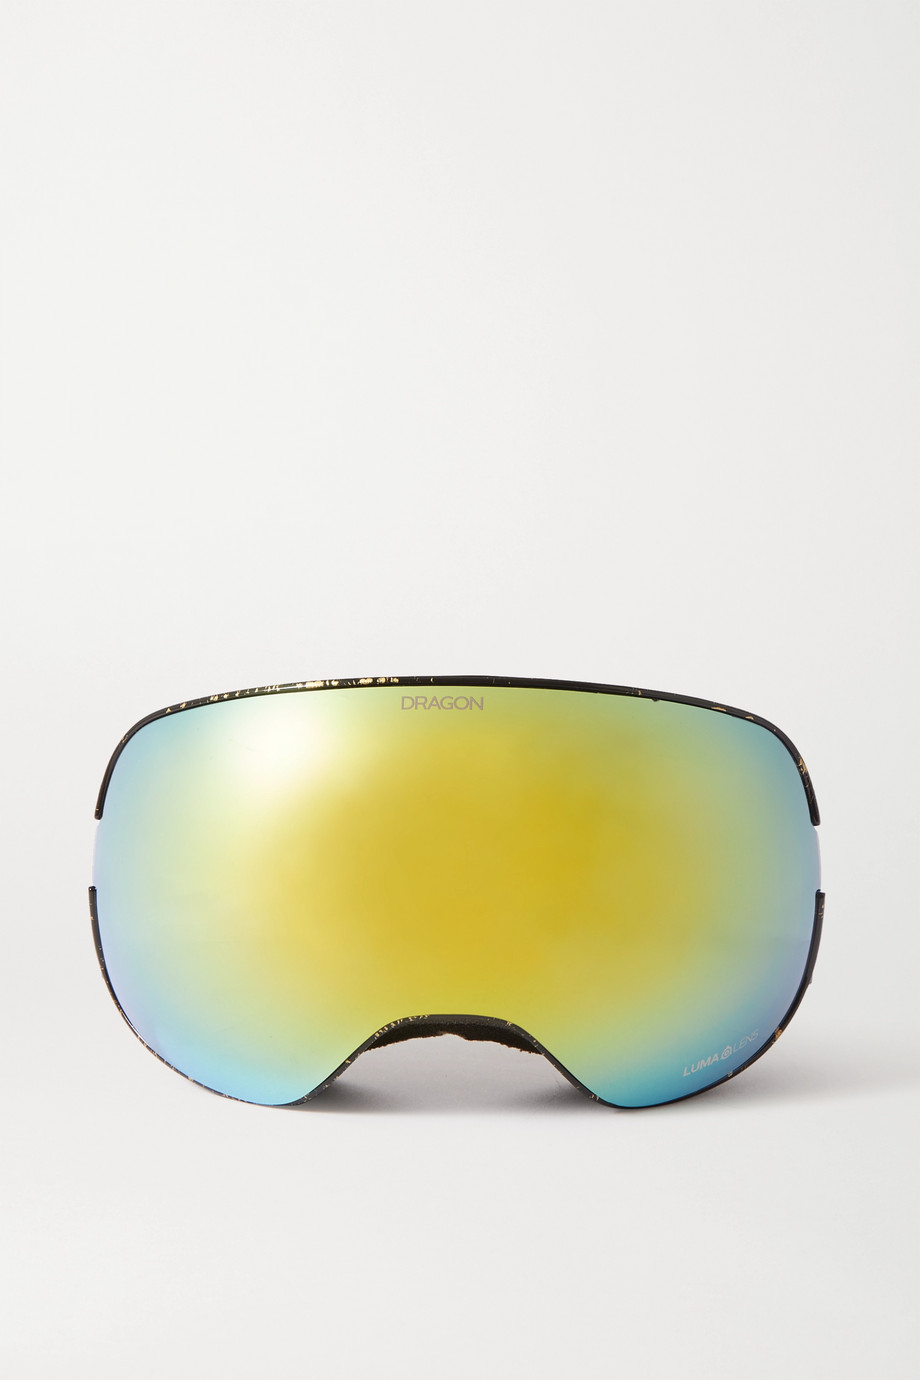 Dragon X2 mirrored ski goggles